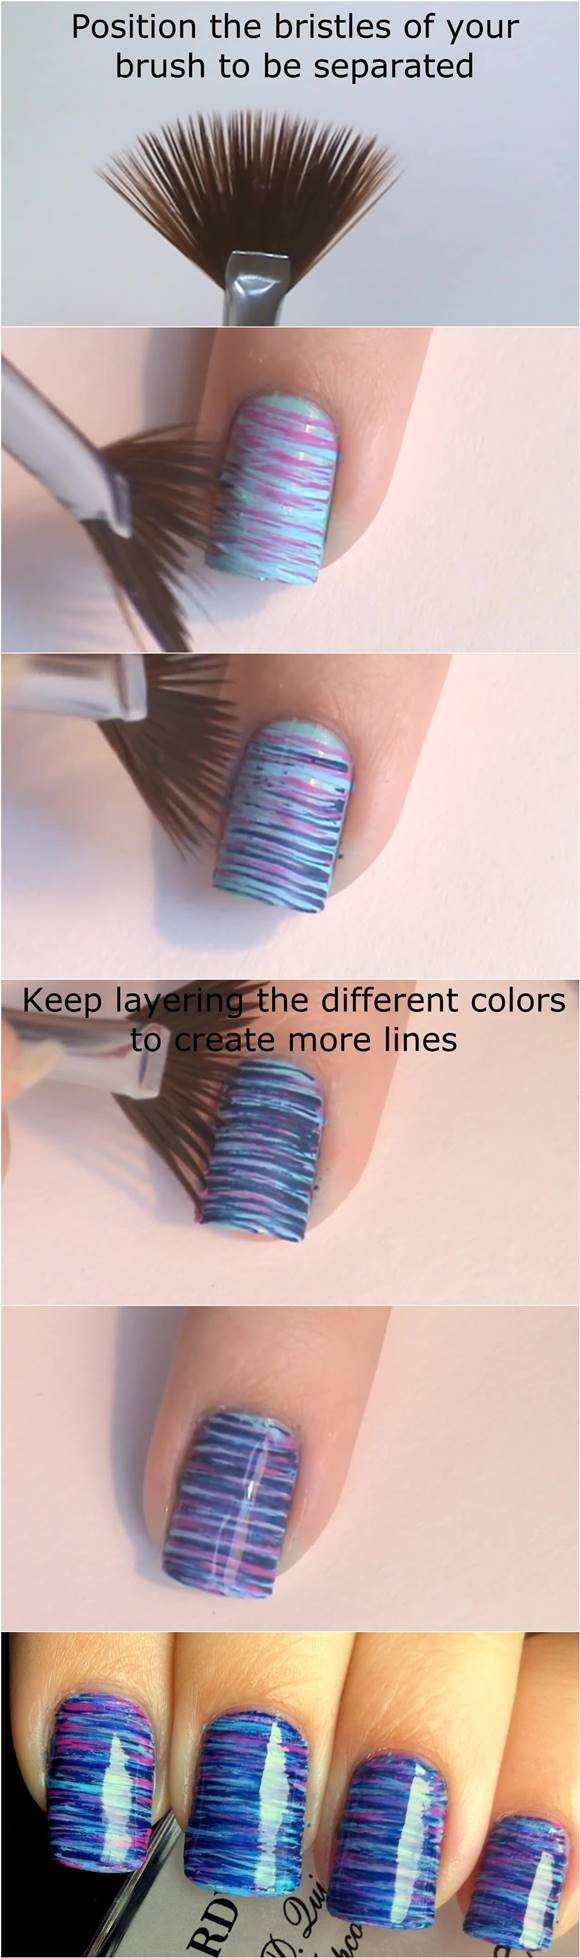 To diy blue and pink fan brush striped nail art how to diy blue and pink fan brush striped nail art prinsesfo Image collections